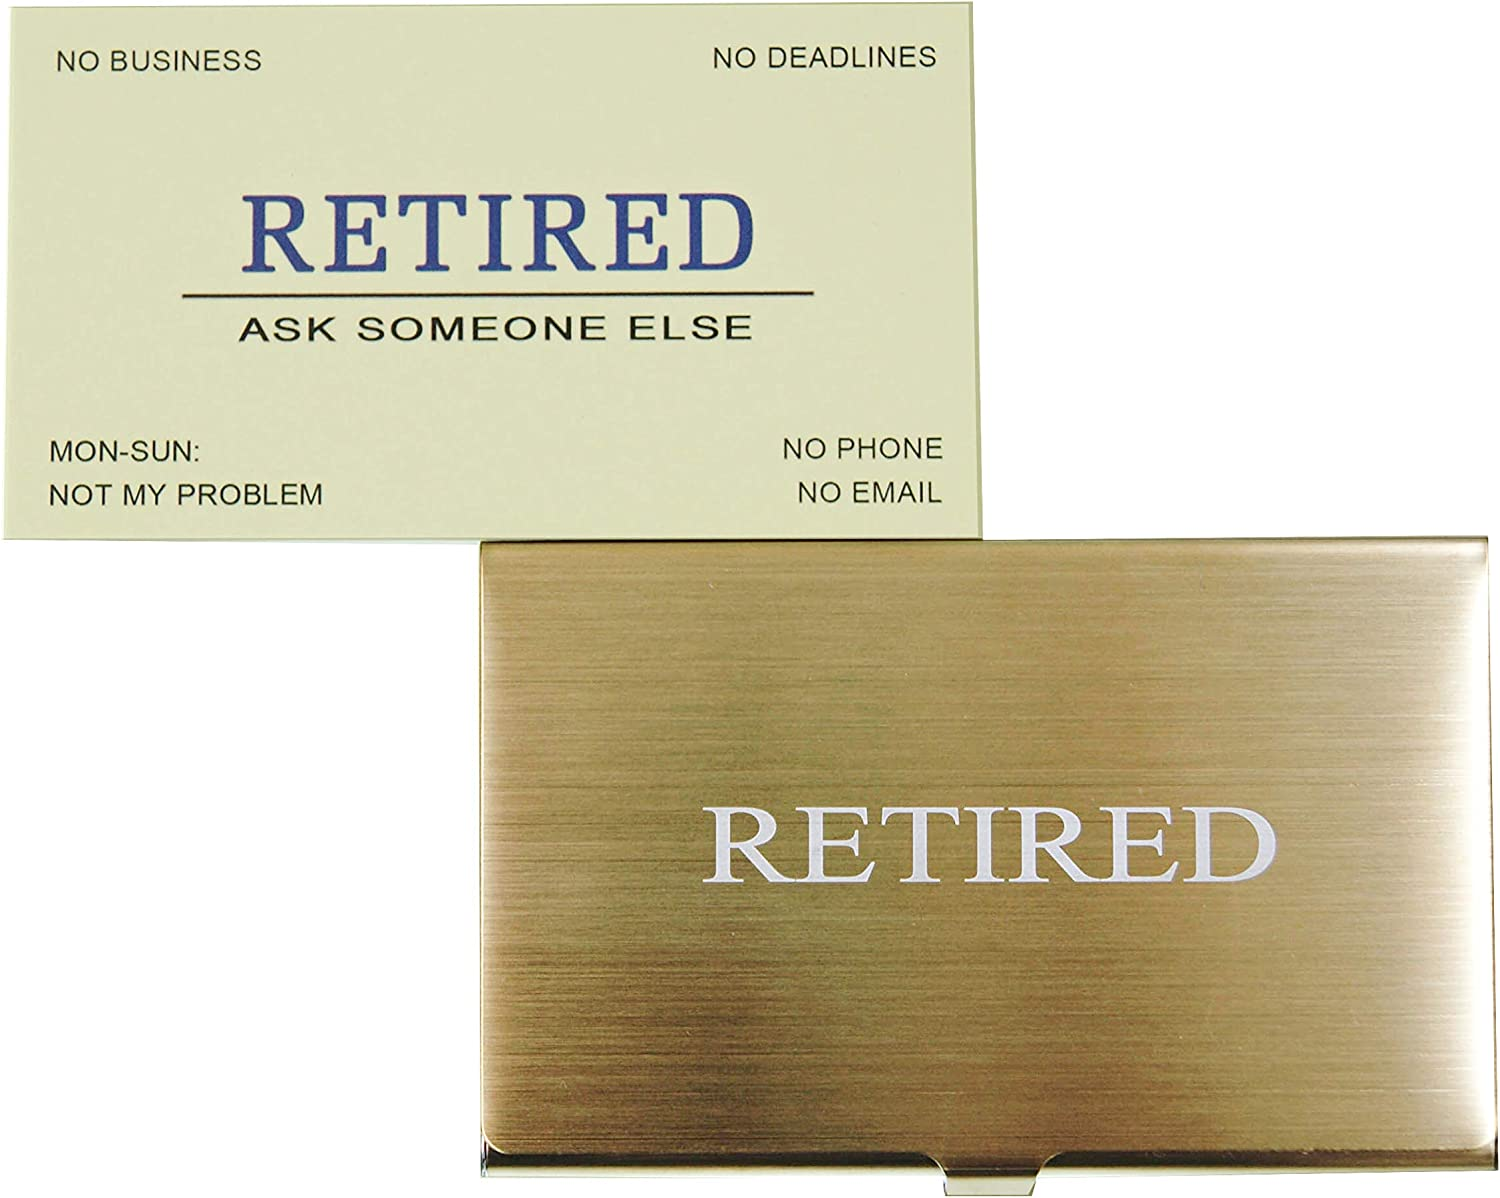 RXBC2011 Retired Business Cards Funny Retirement Gift (Pack of 50/With Gold Stainless Steel Case) For Retired Men, Women, Coworkers, Employees, Boss, Friend, Colleague